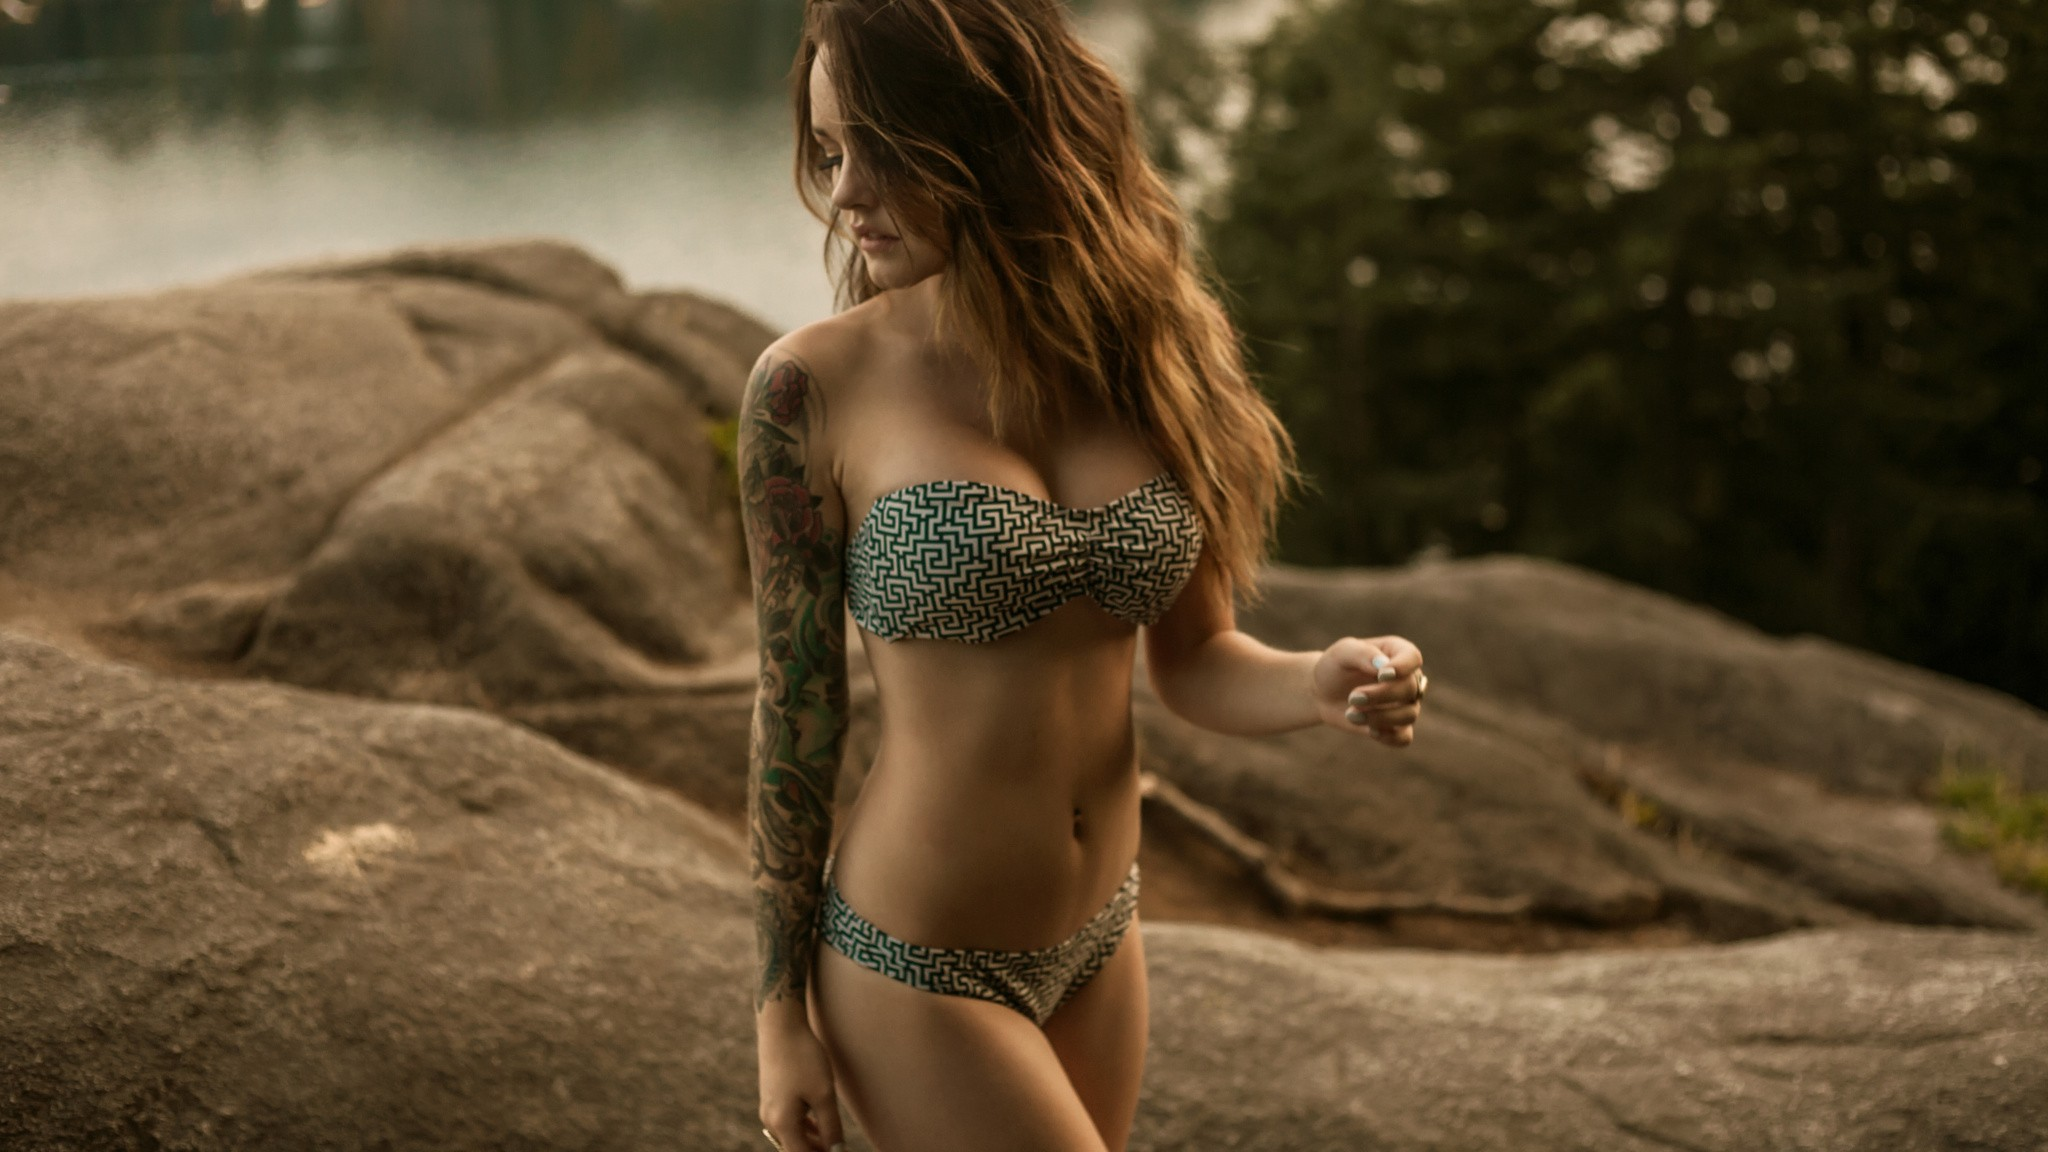 People 2048x1152 women brunette bikini tattoo bra panties rocks Jason Harynuk